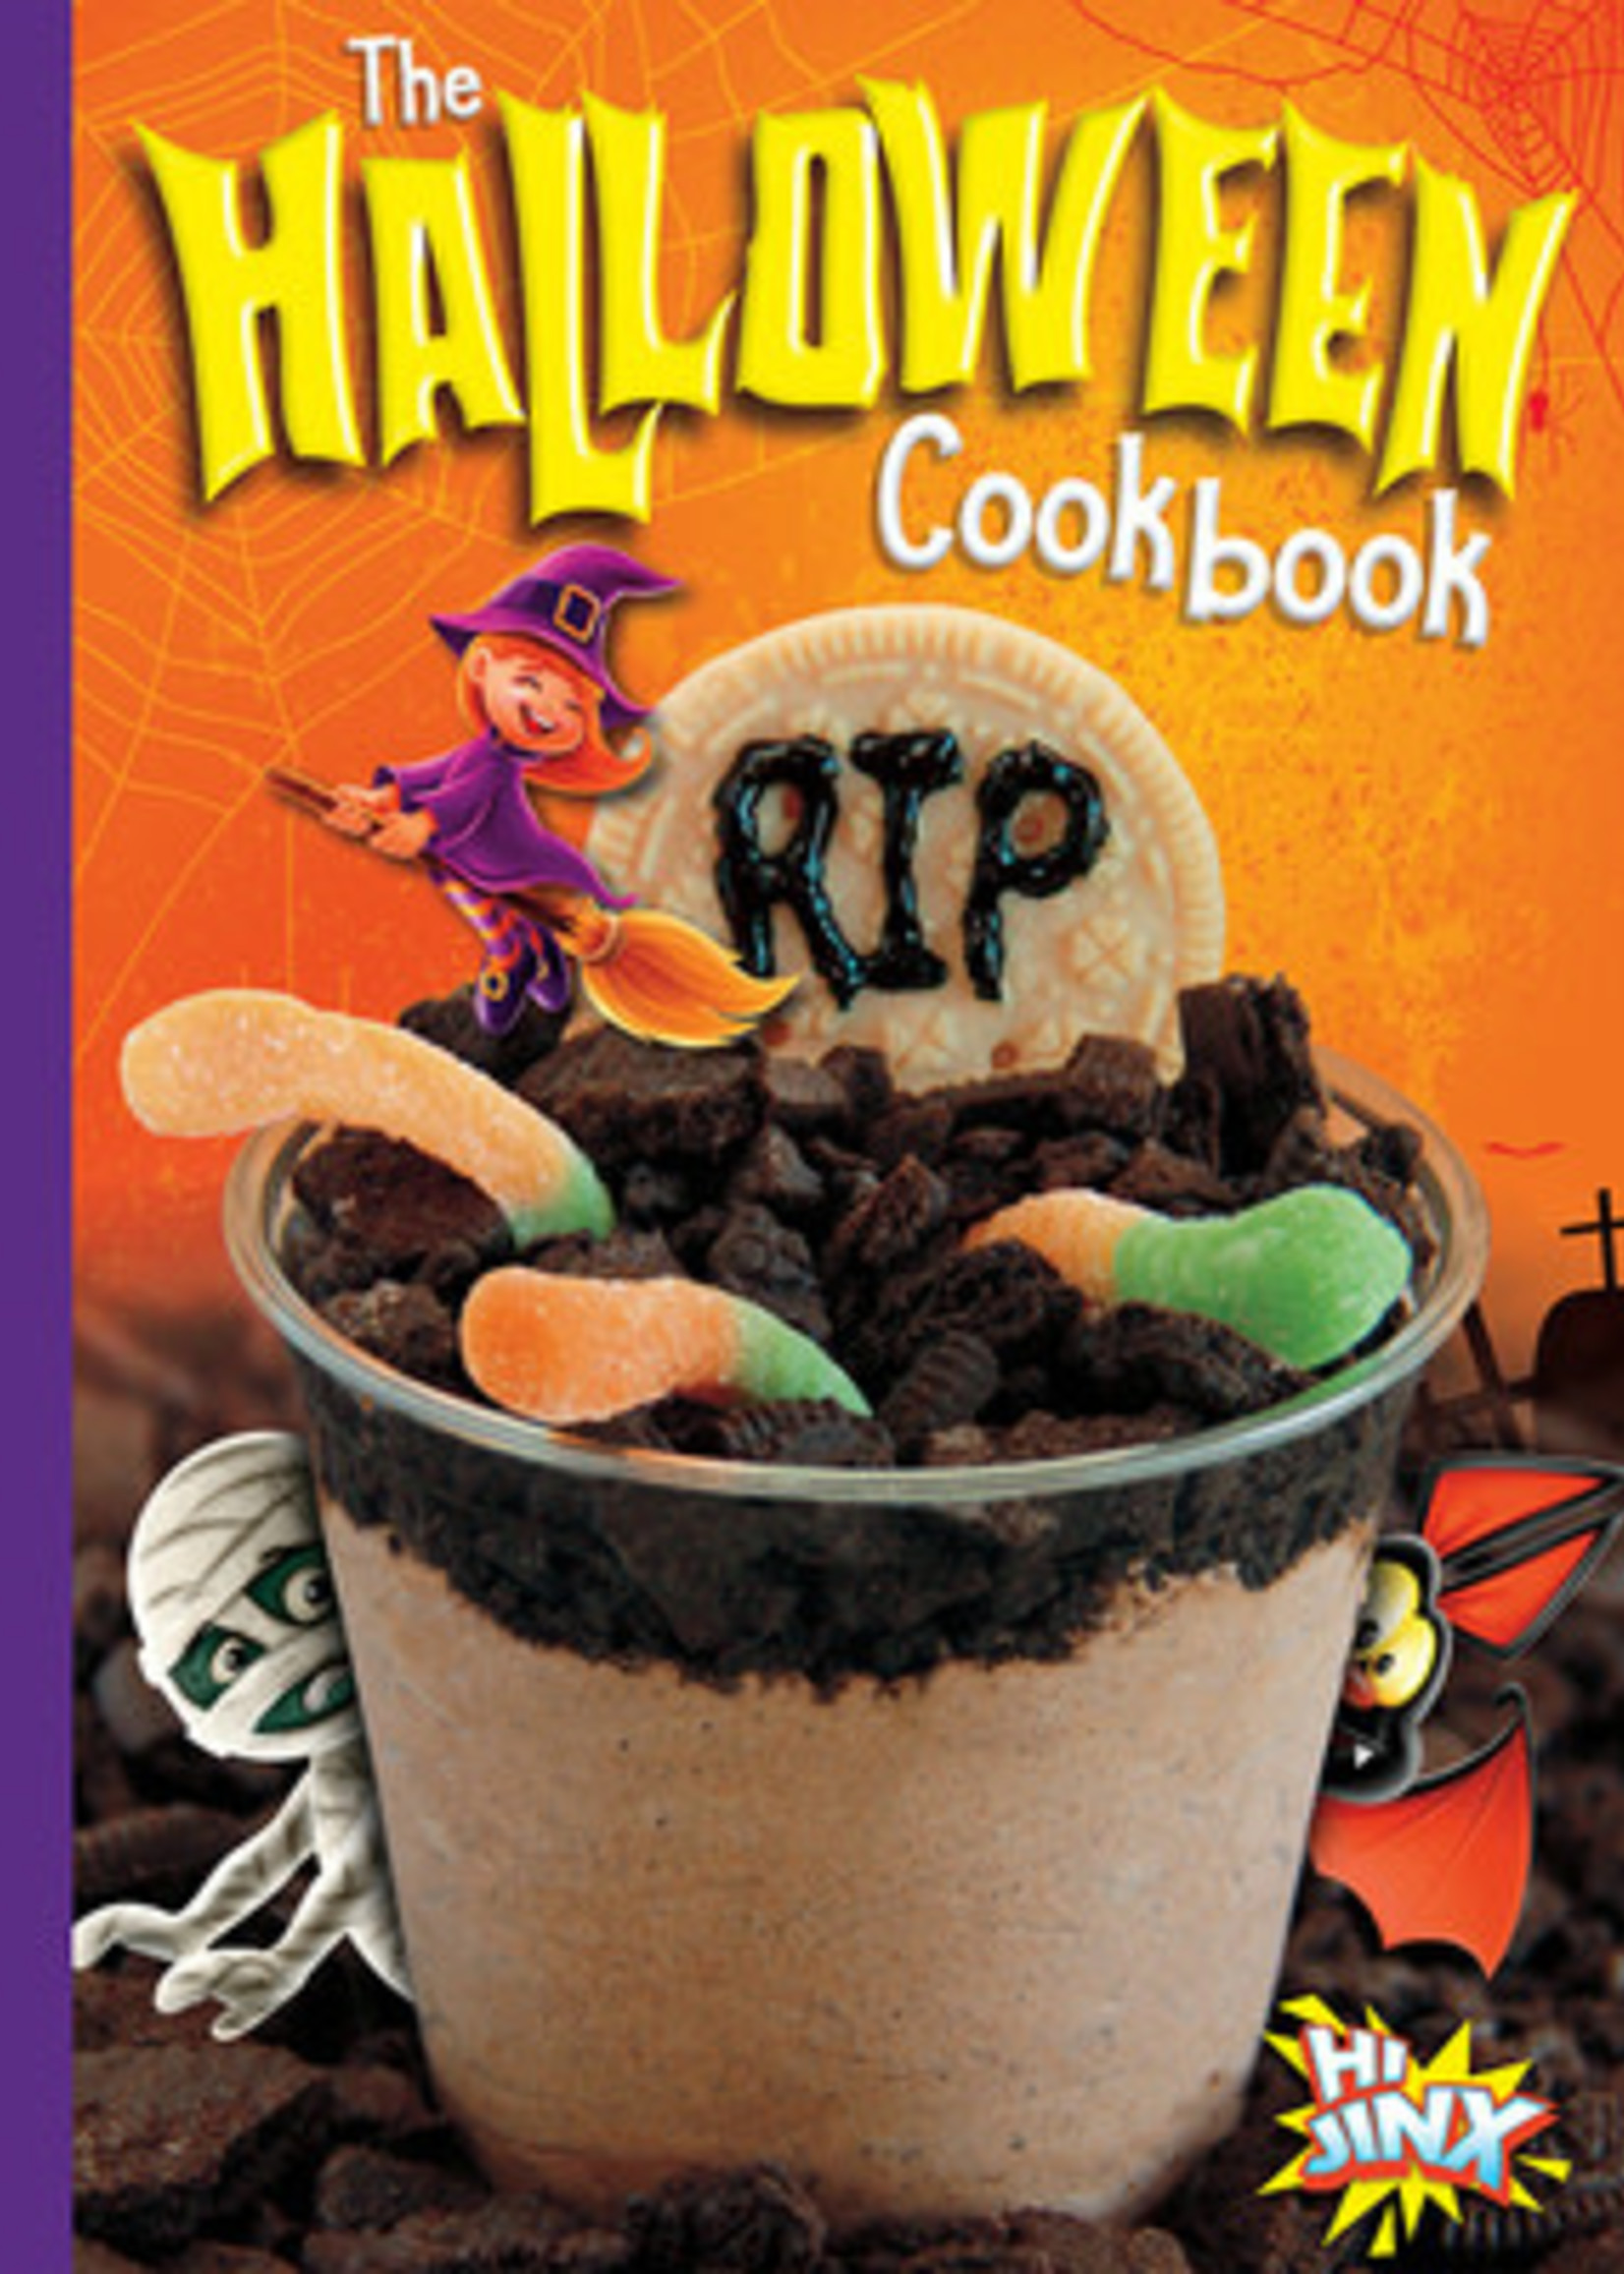 The Halloween Cookbook by Mary Lou Caswell,  Deanna Caswell